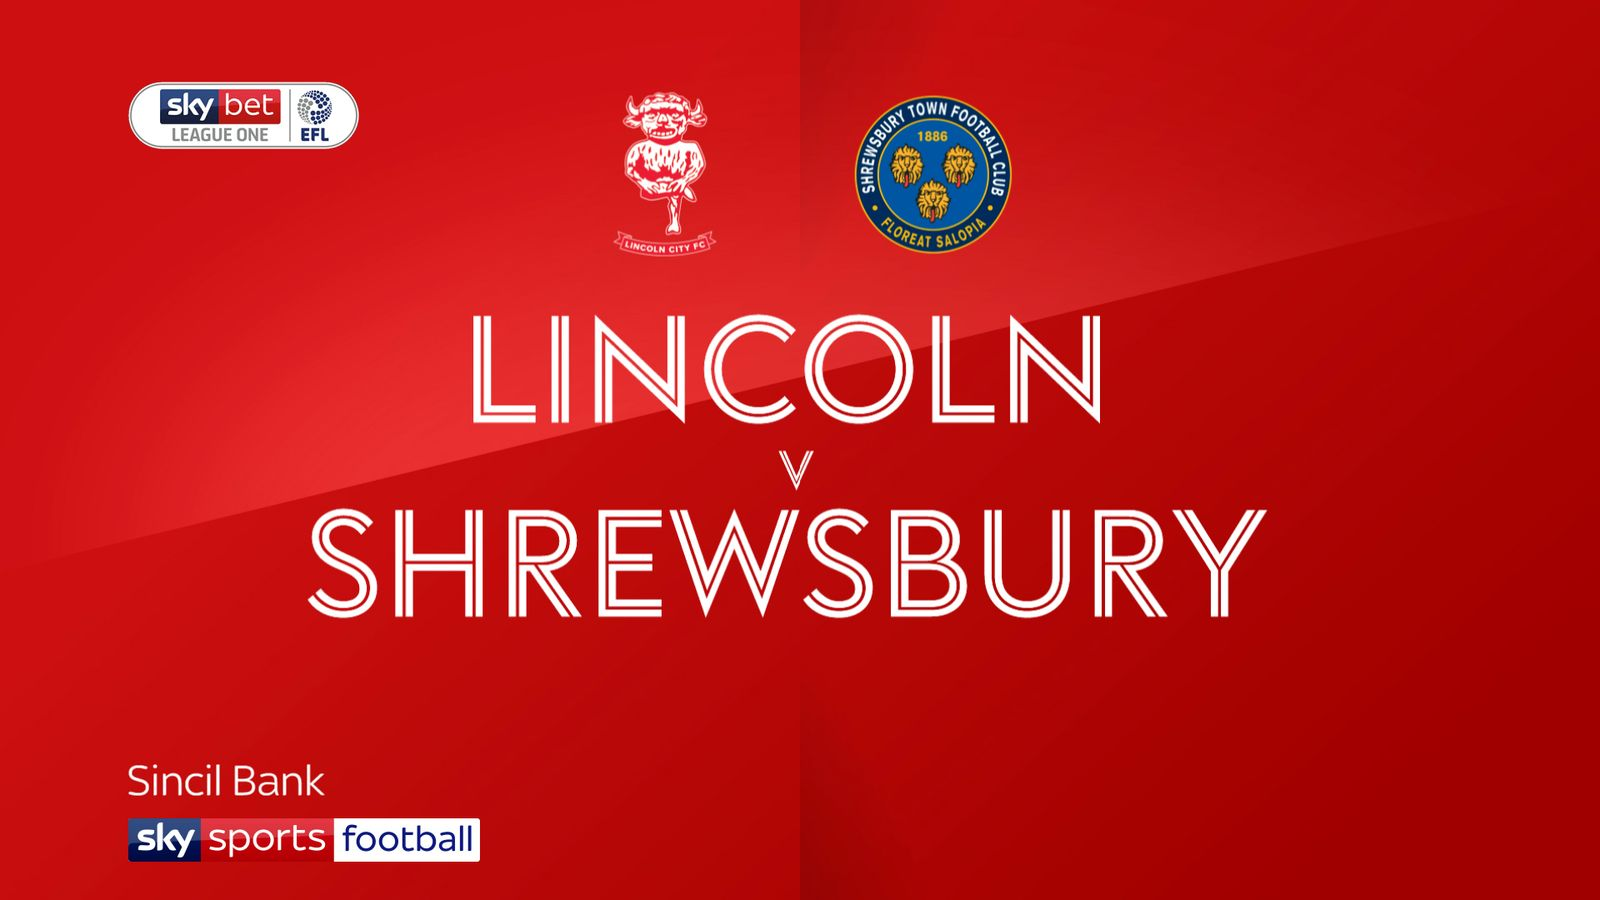 Lincoln 1-1 Shrewsbury: Cian Bolger sent off in stalemate at Sincil Bank